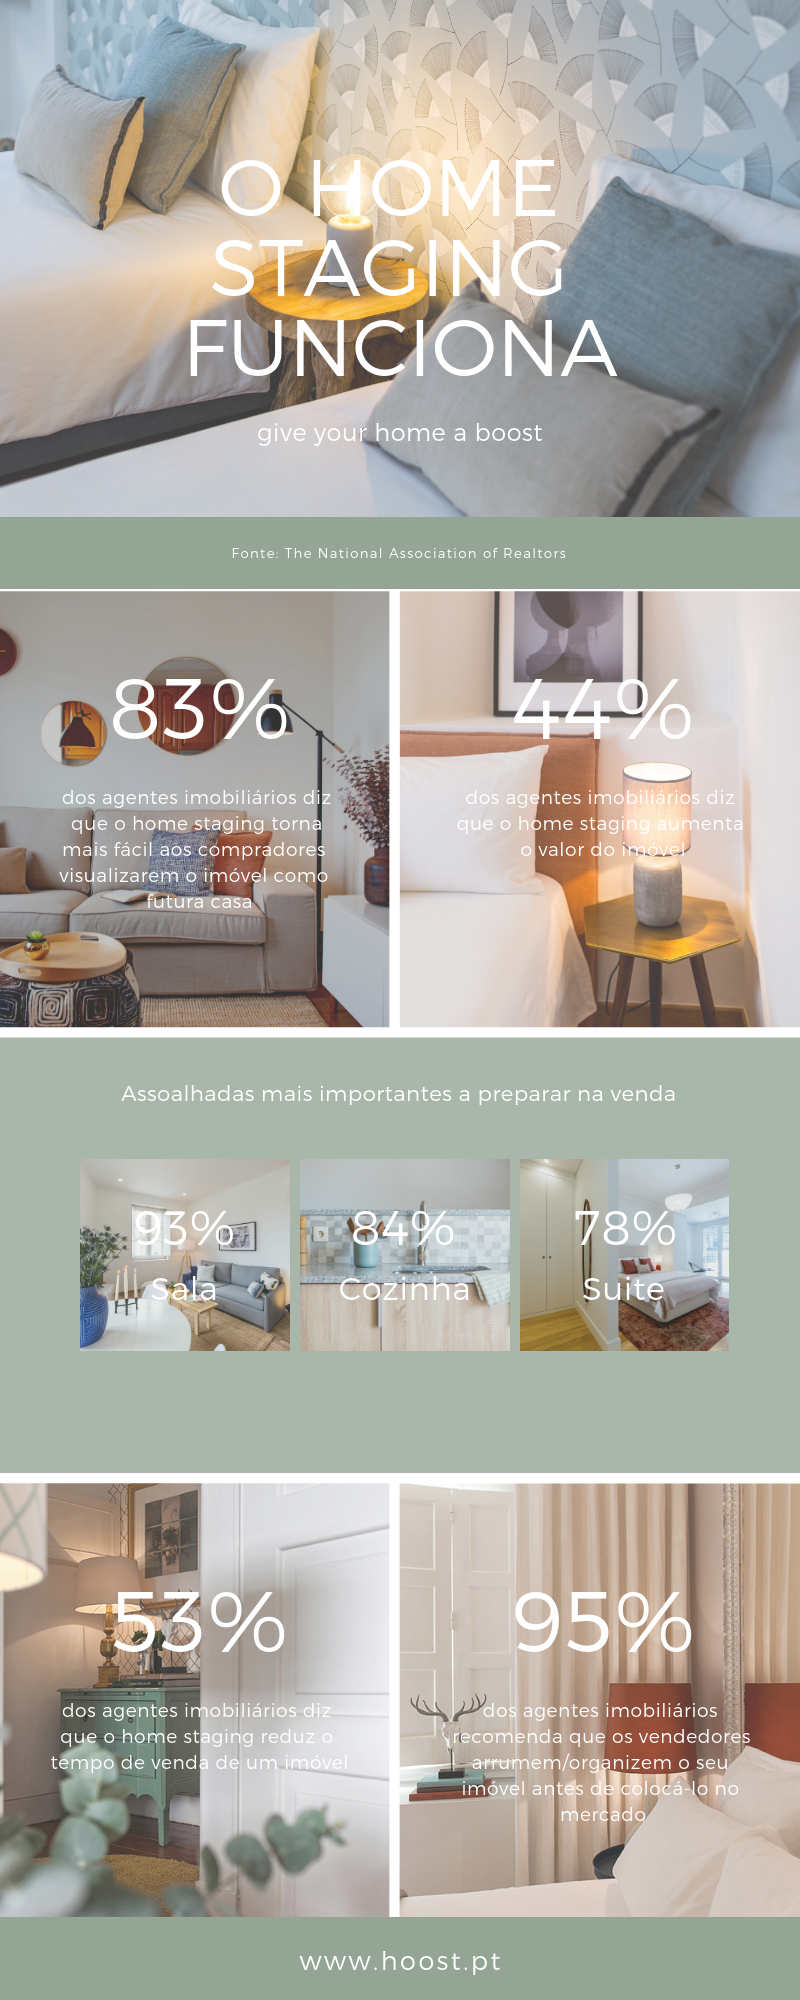 Tabela com as estatísitcas mais importantes sobre home staging